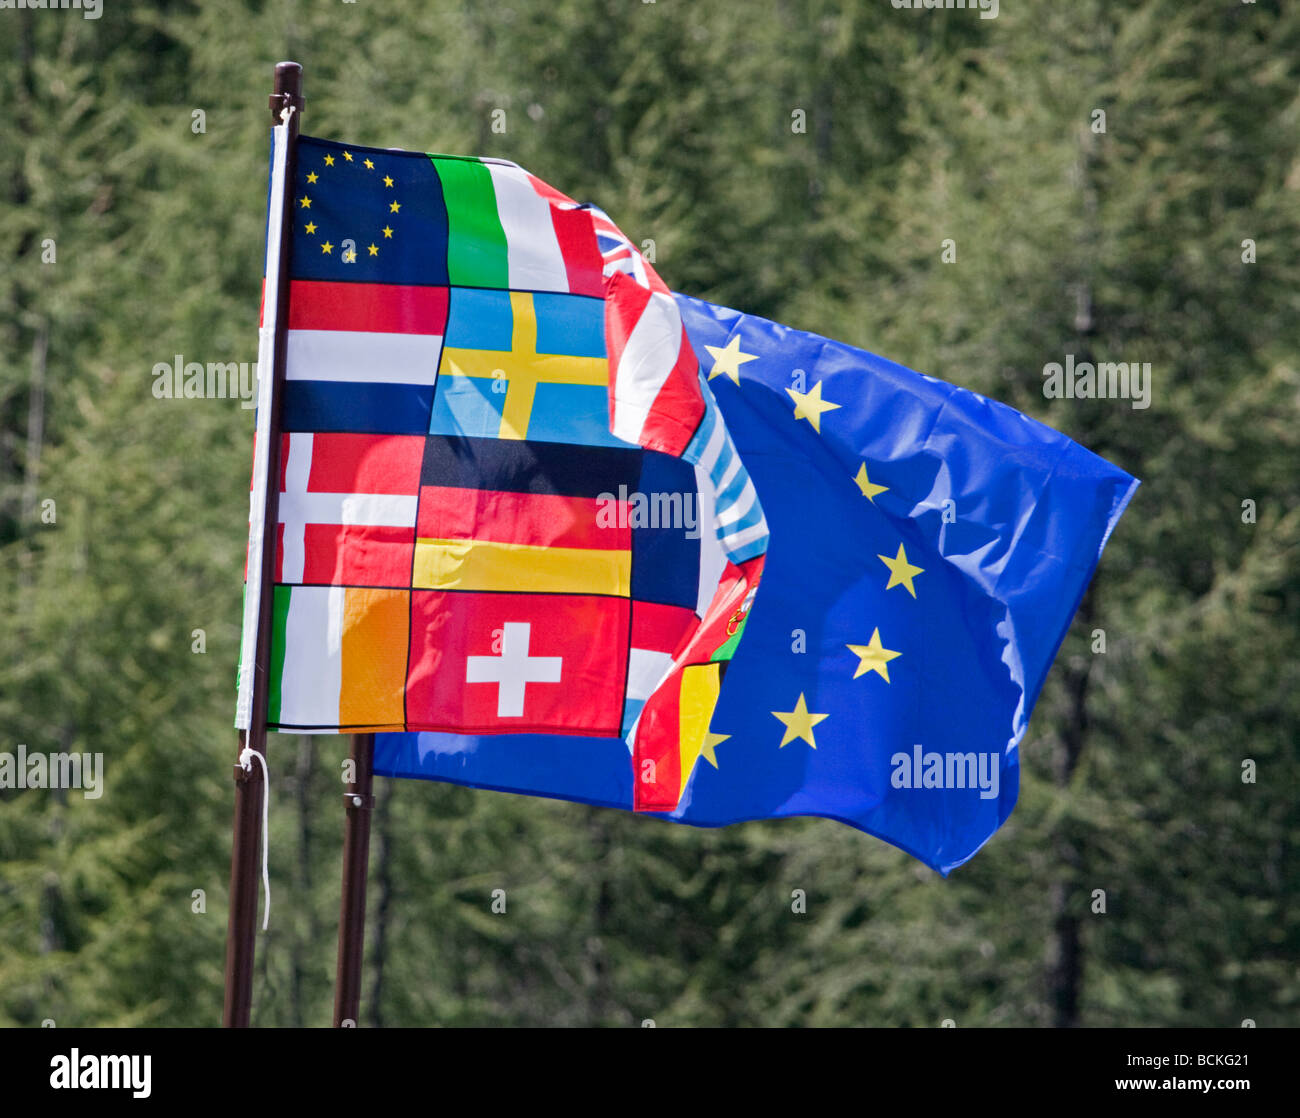 Two European Union Flags showing National Flags and Stars, Italy Stock Photo